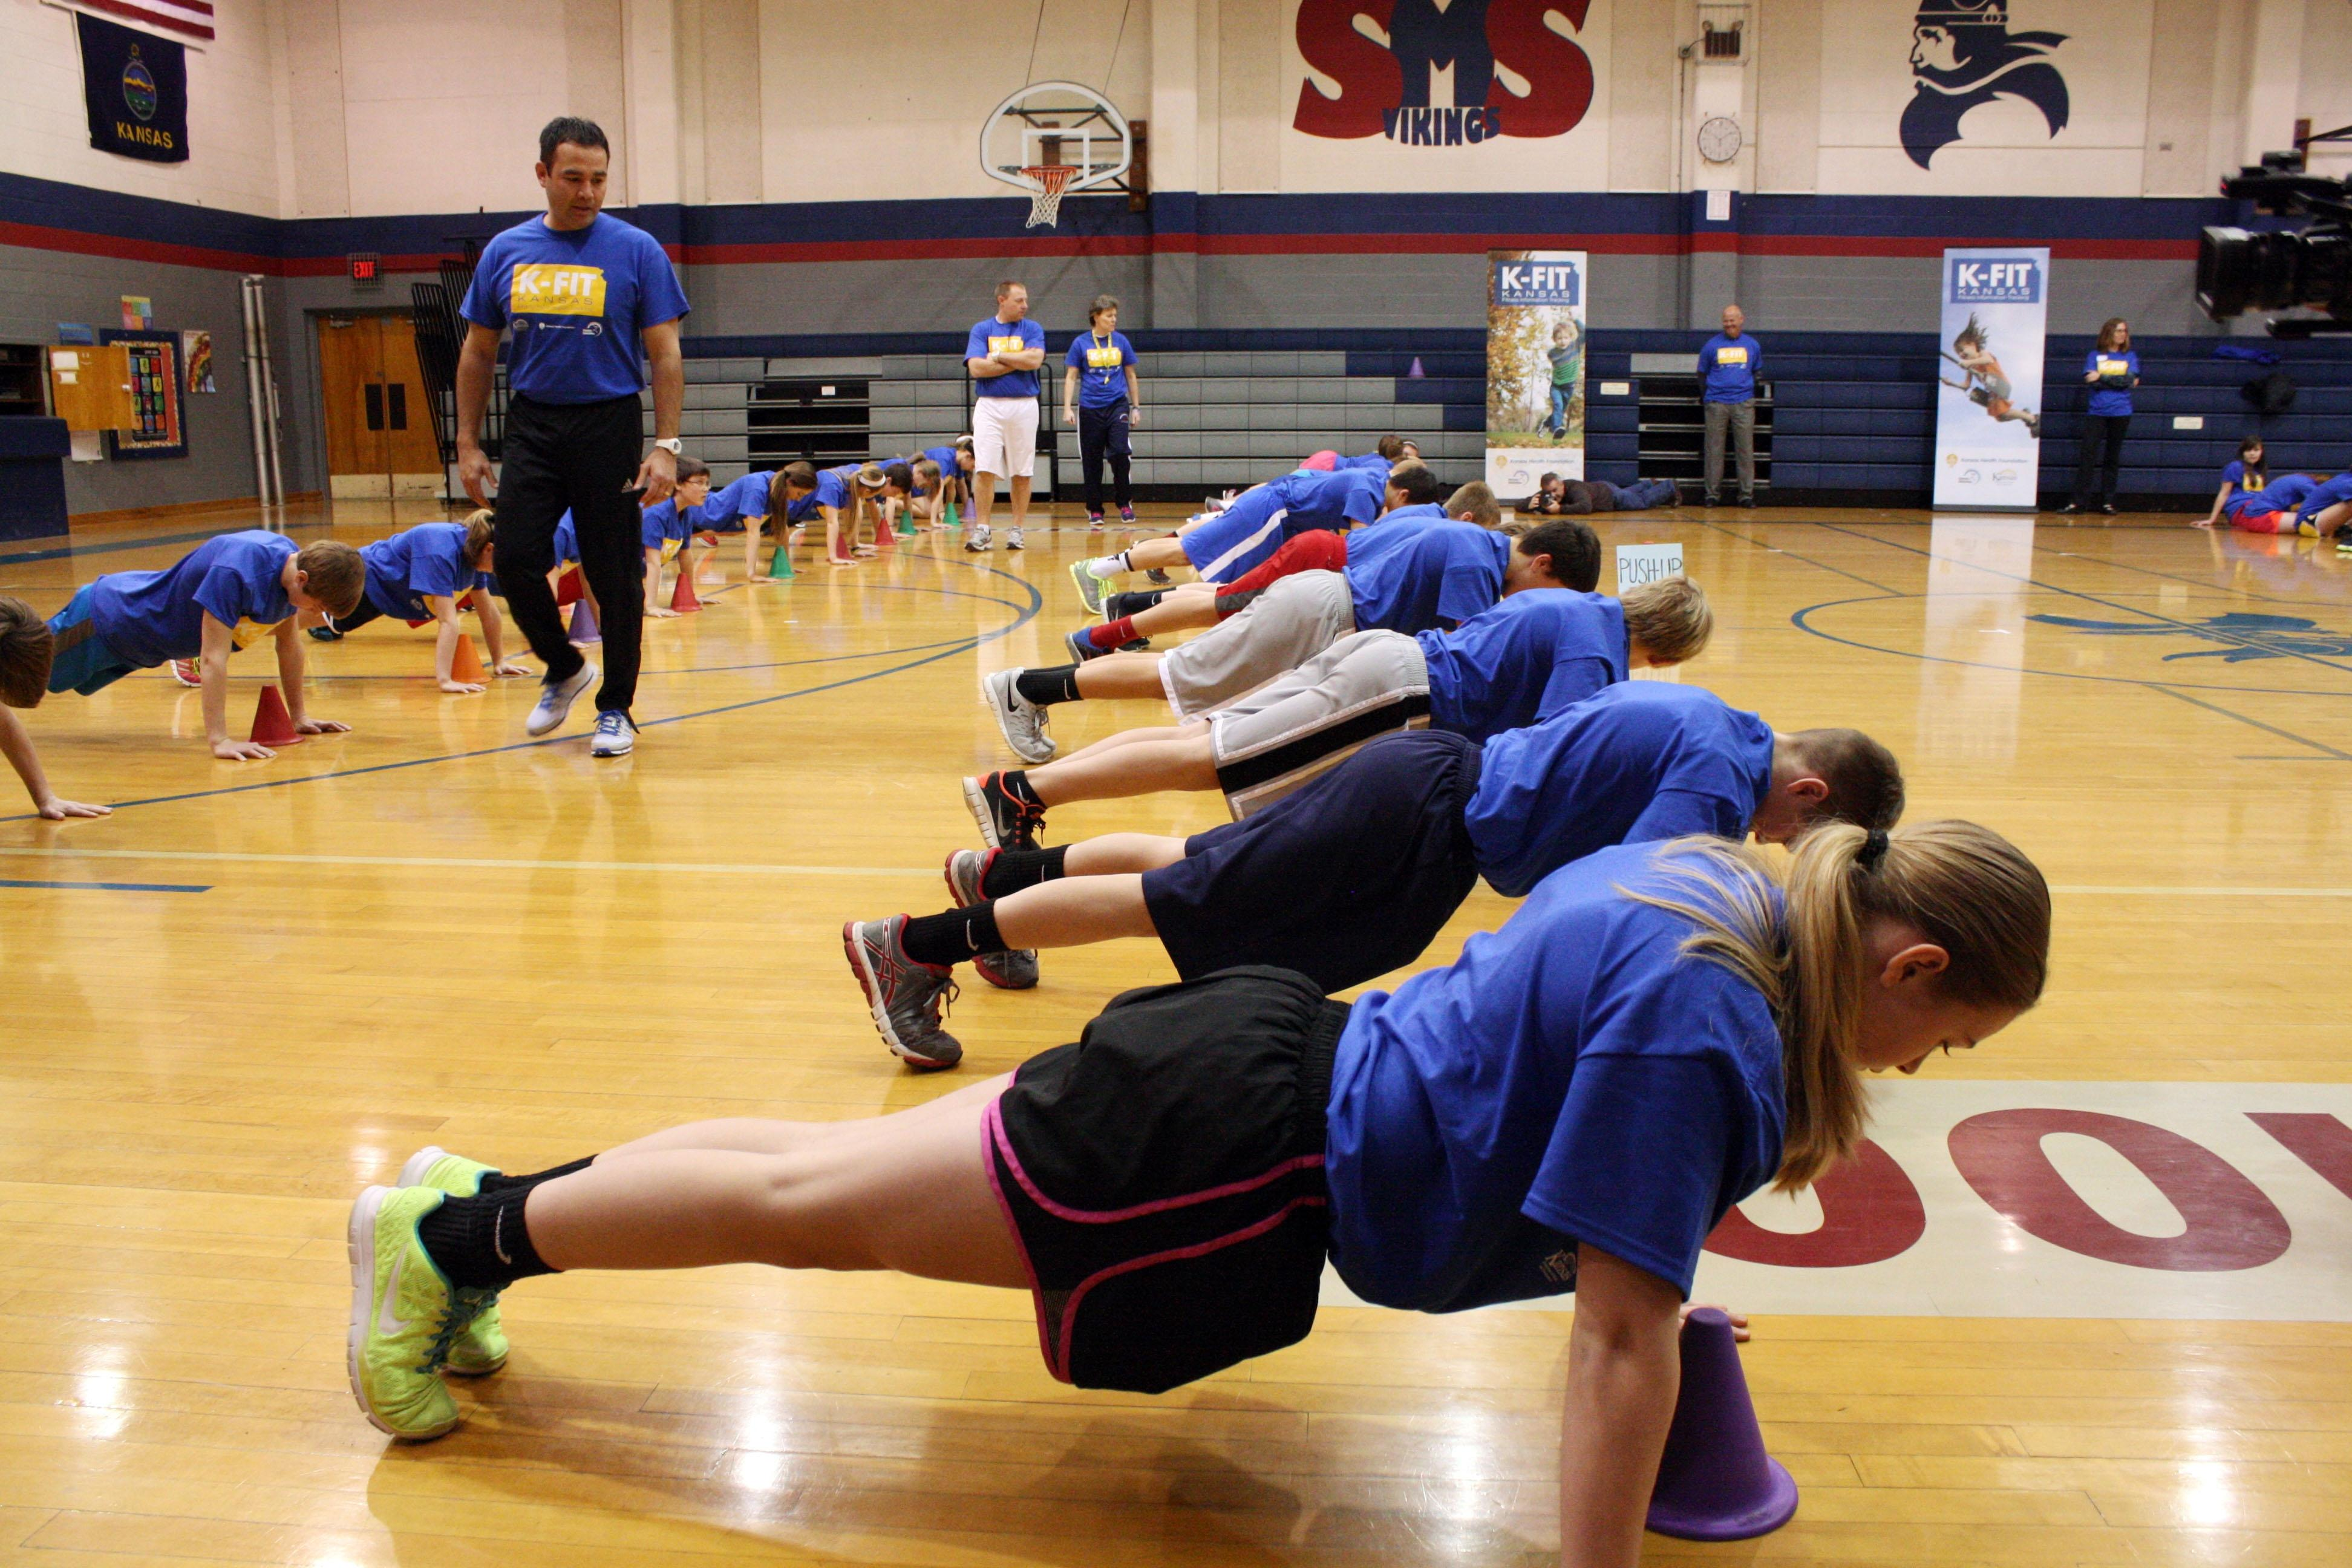 physical activity and fitness on academic The journal of exercise science and fitness is the official peer-reviewed journal of the society of chinese scholars on exercise physiology and fitness (scsepf), the physical fitness association of hong kong, china (hkpfa), and the hong kong association of sports medicine and sports science (hkasmss.